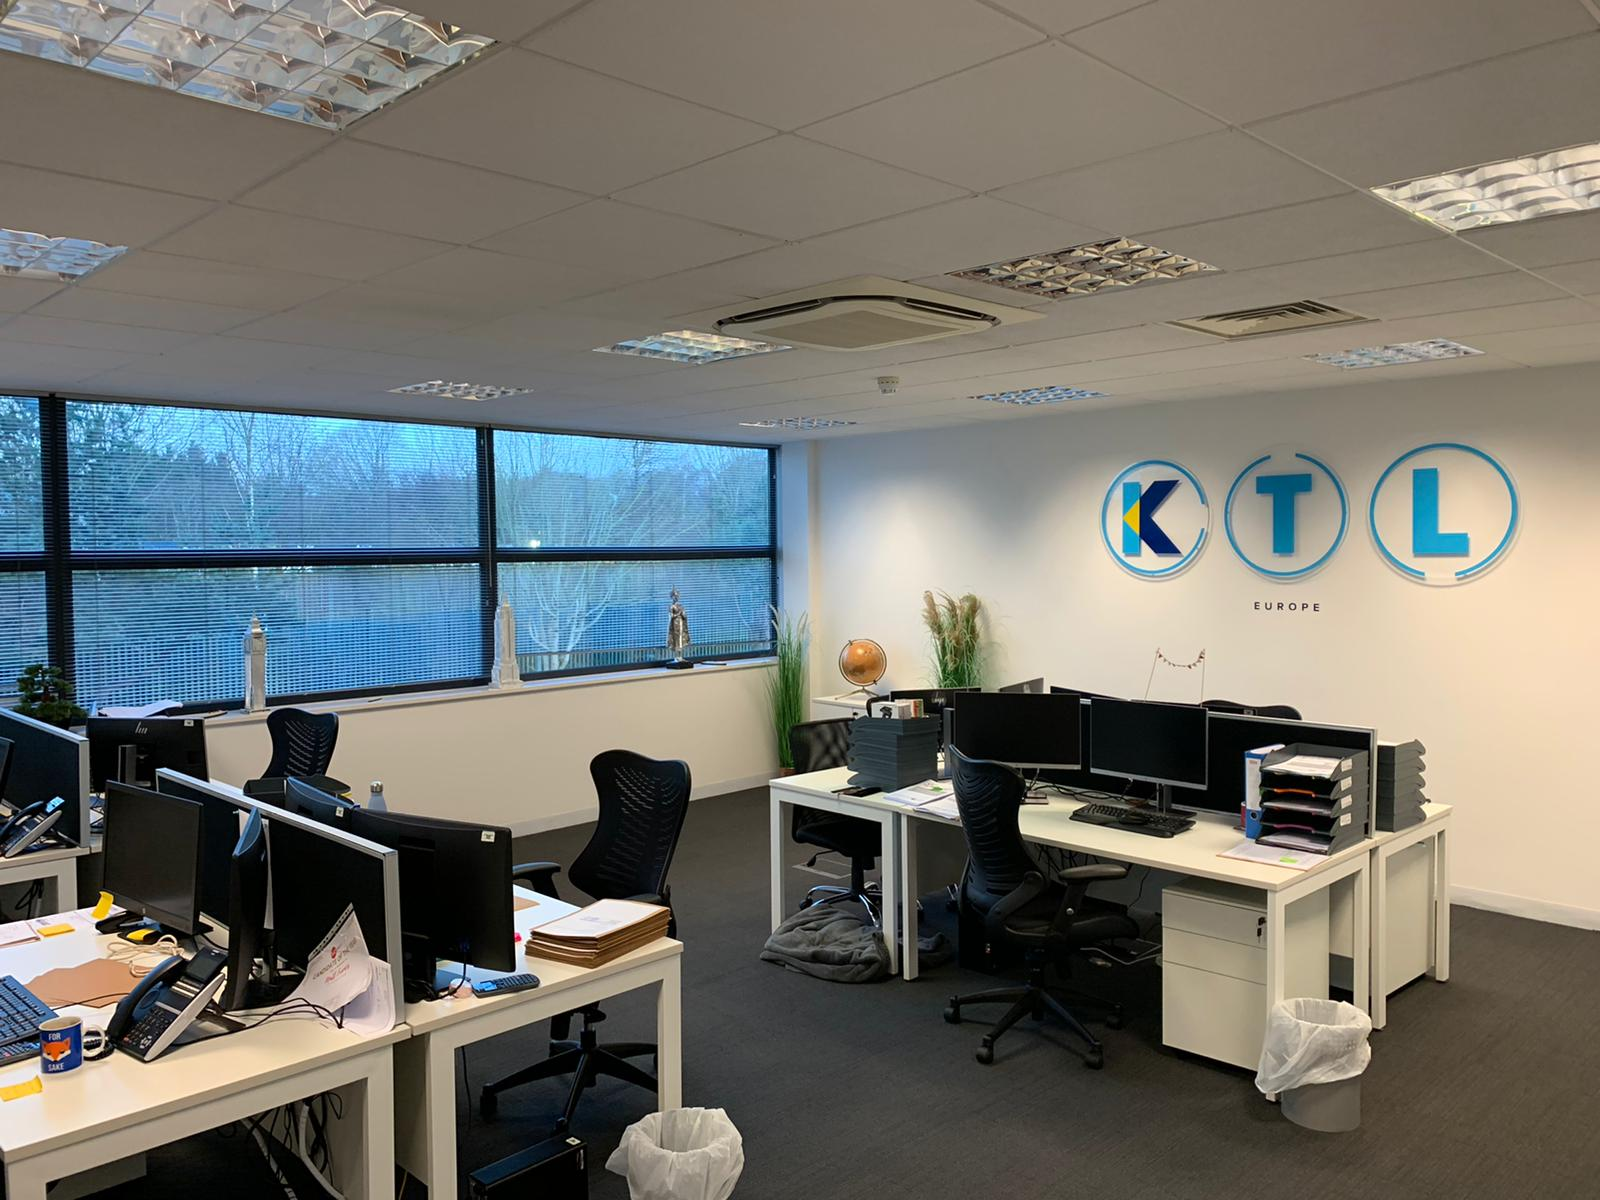 The KTL Europe team are back in the office